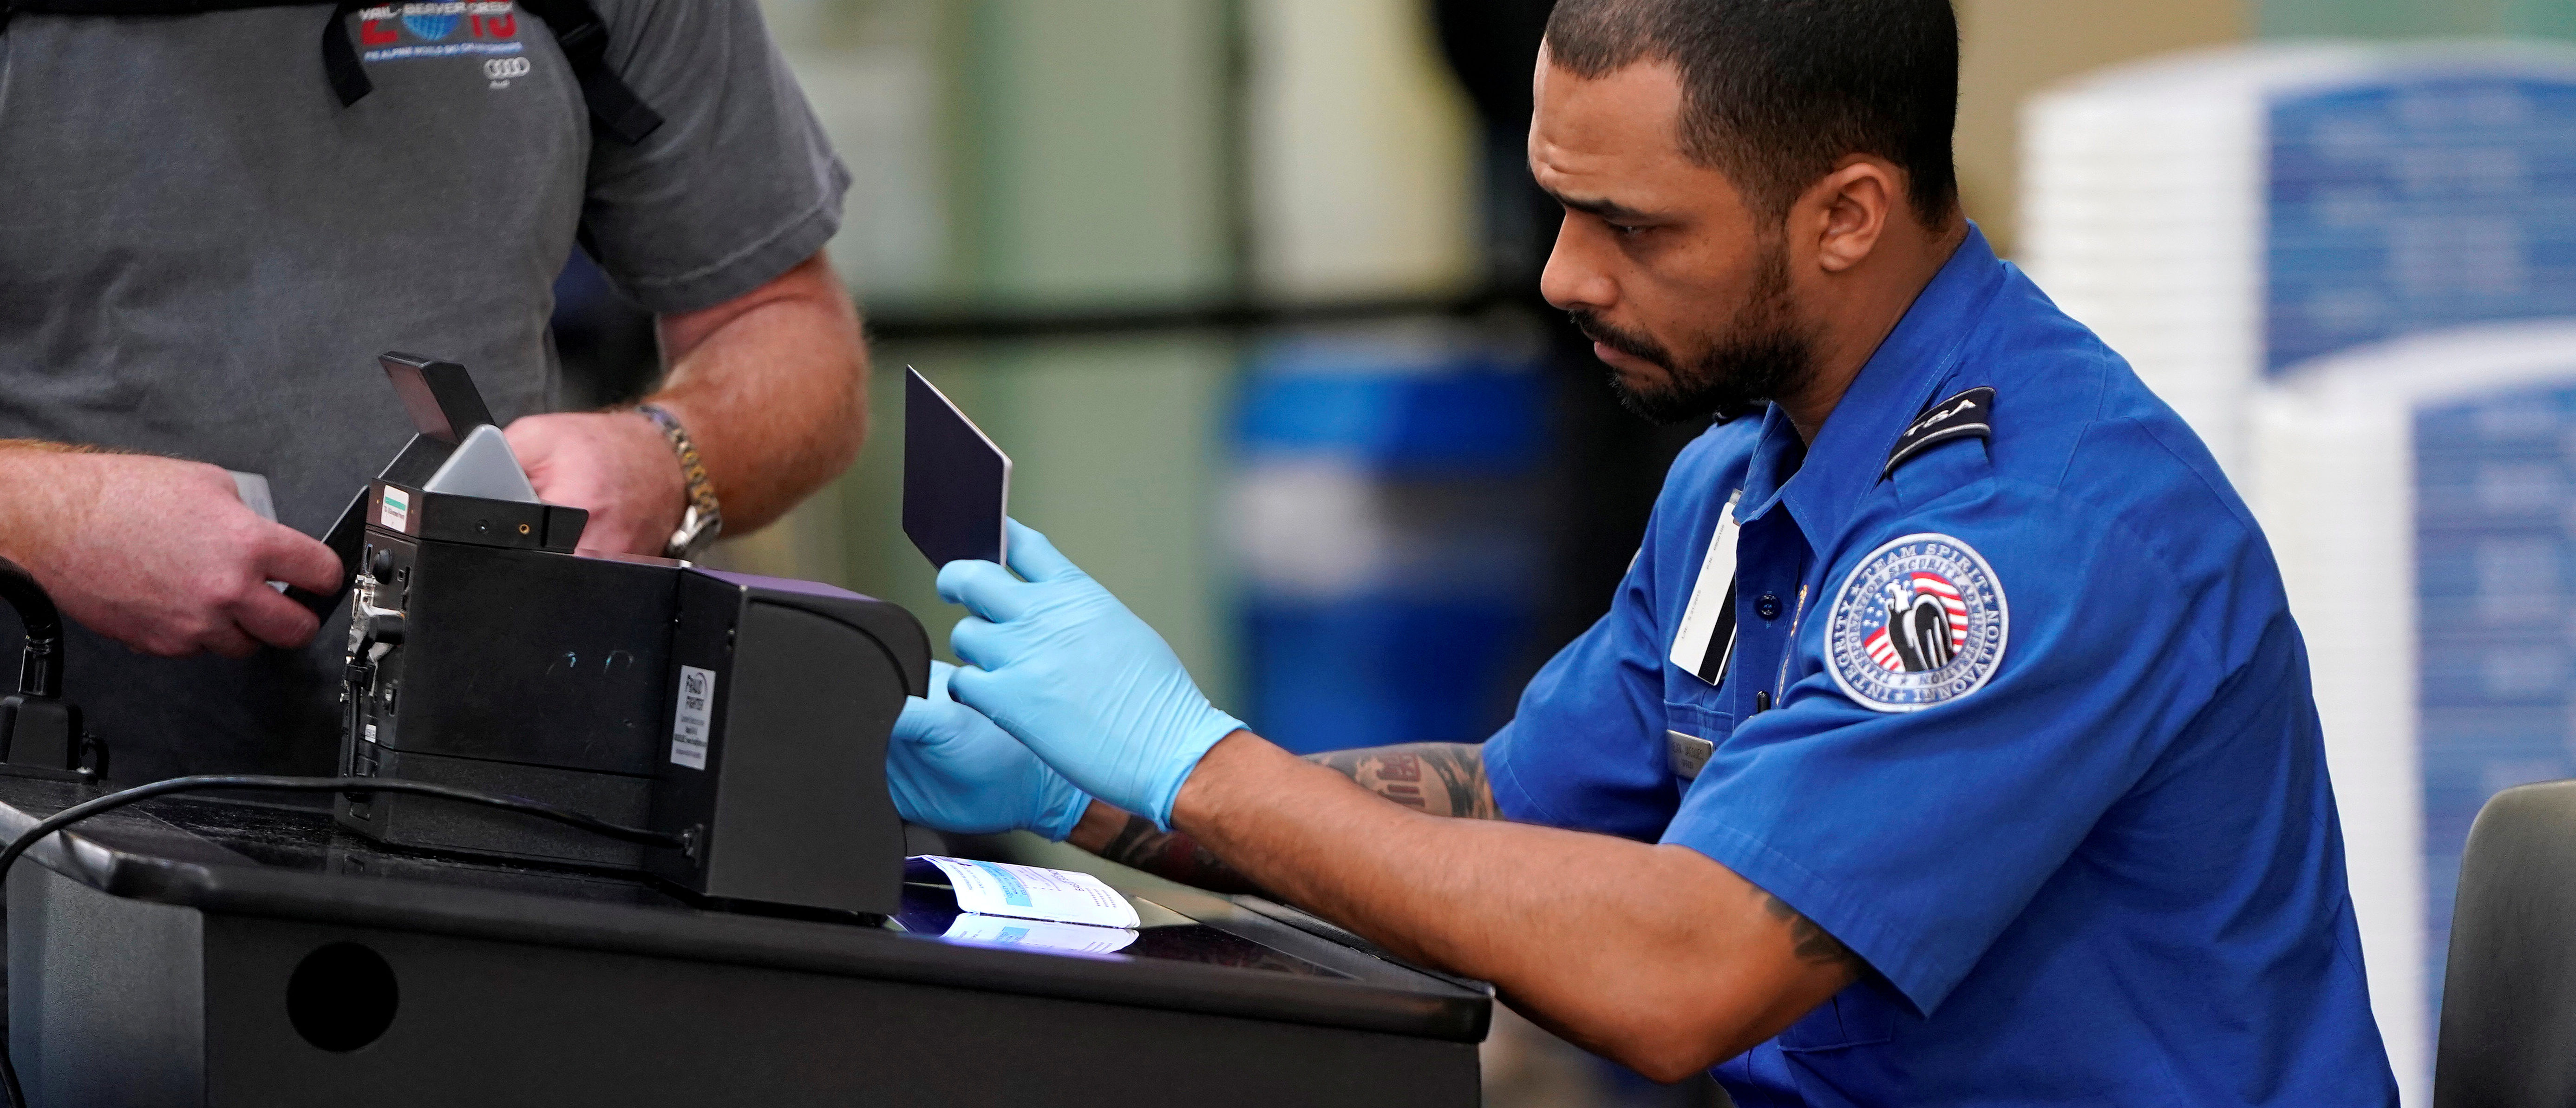 FILE PHOTO: An employee with the Transportation Security Administration (TSA) checks the documents of a traveler at Reagan National Airport in Washington, U.S., January 6, 2019. REUTERS/Joshua Roberts